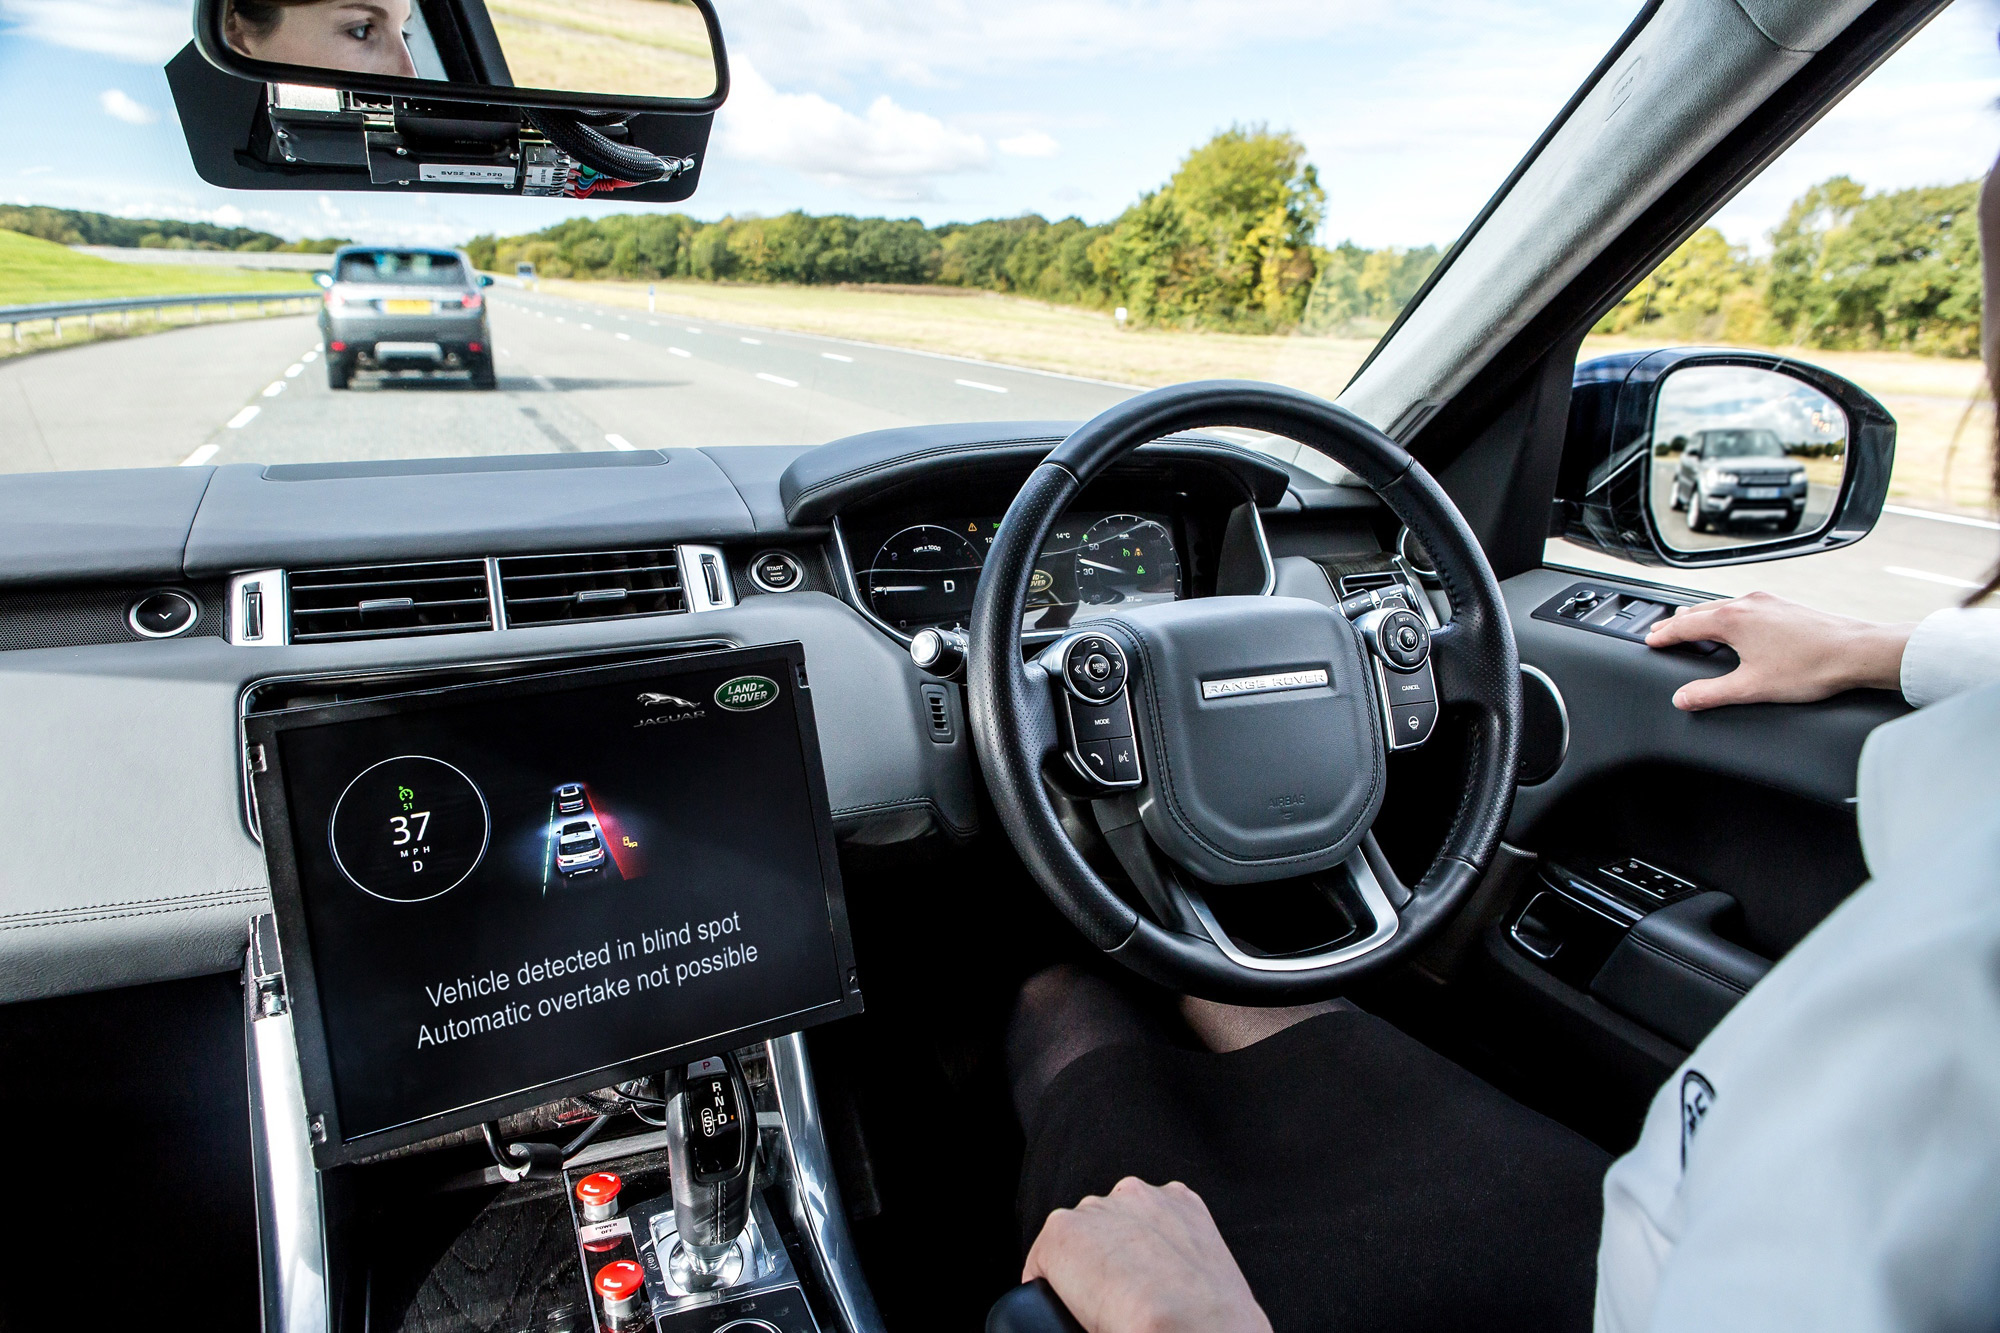 Jaguar Land Rover UK autodrive advanced highway assist